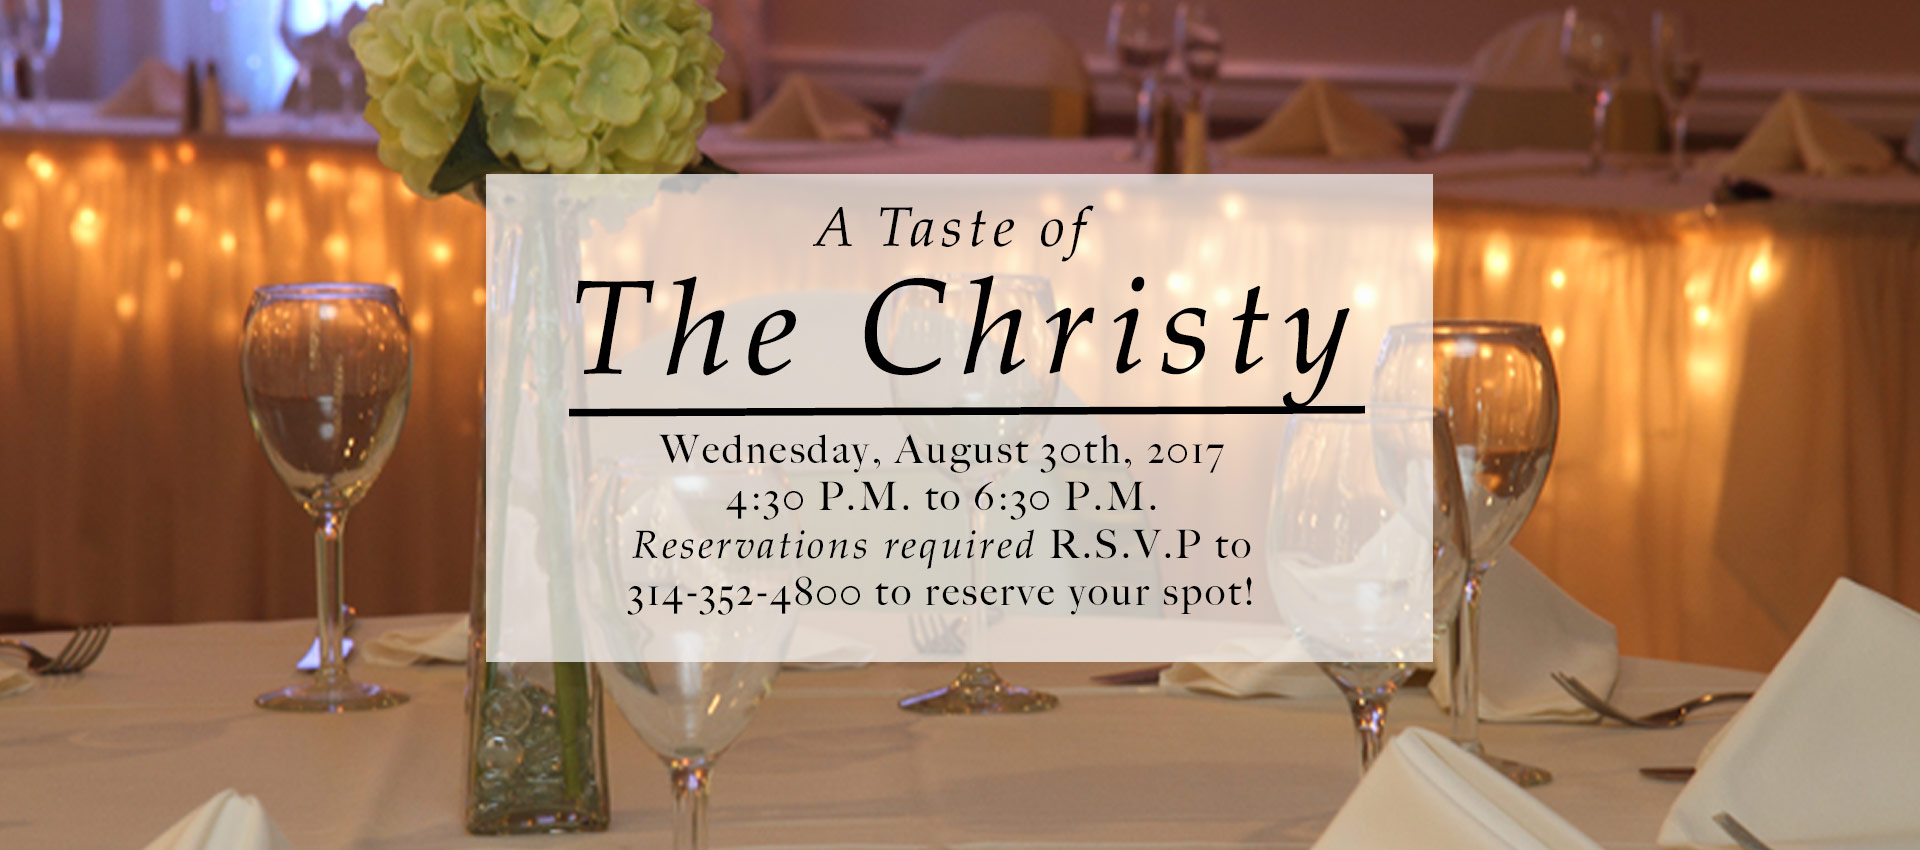 christy-august-tasting-event-catering-company